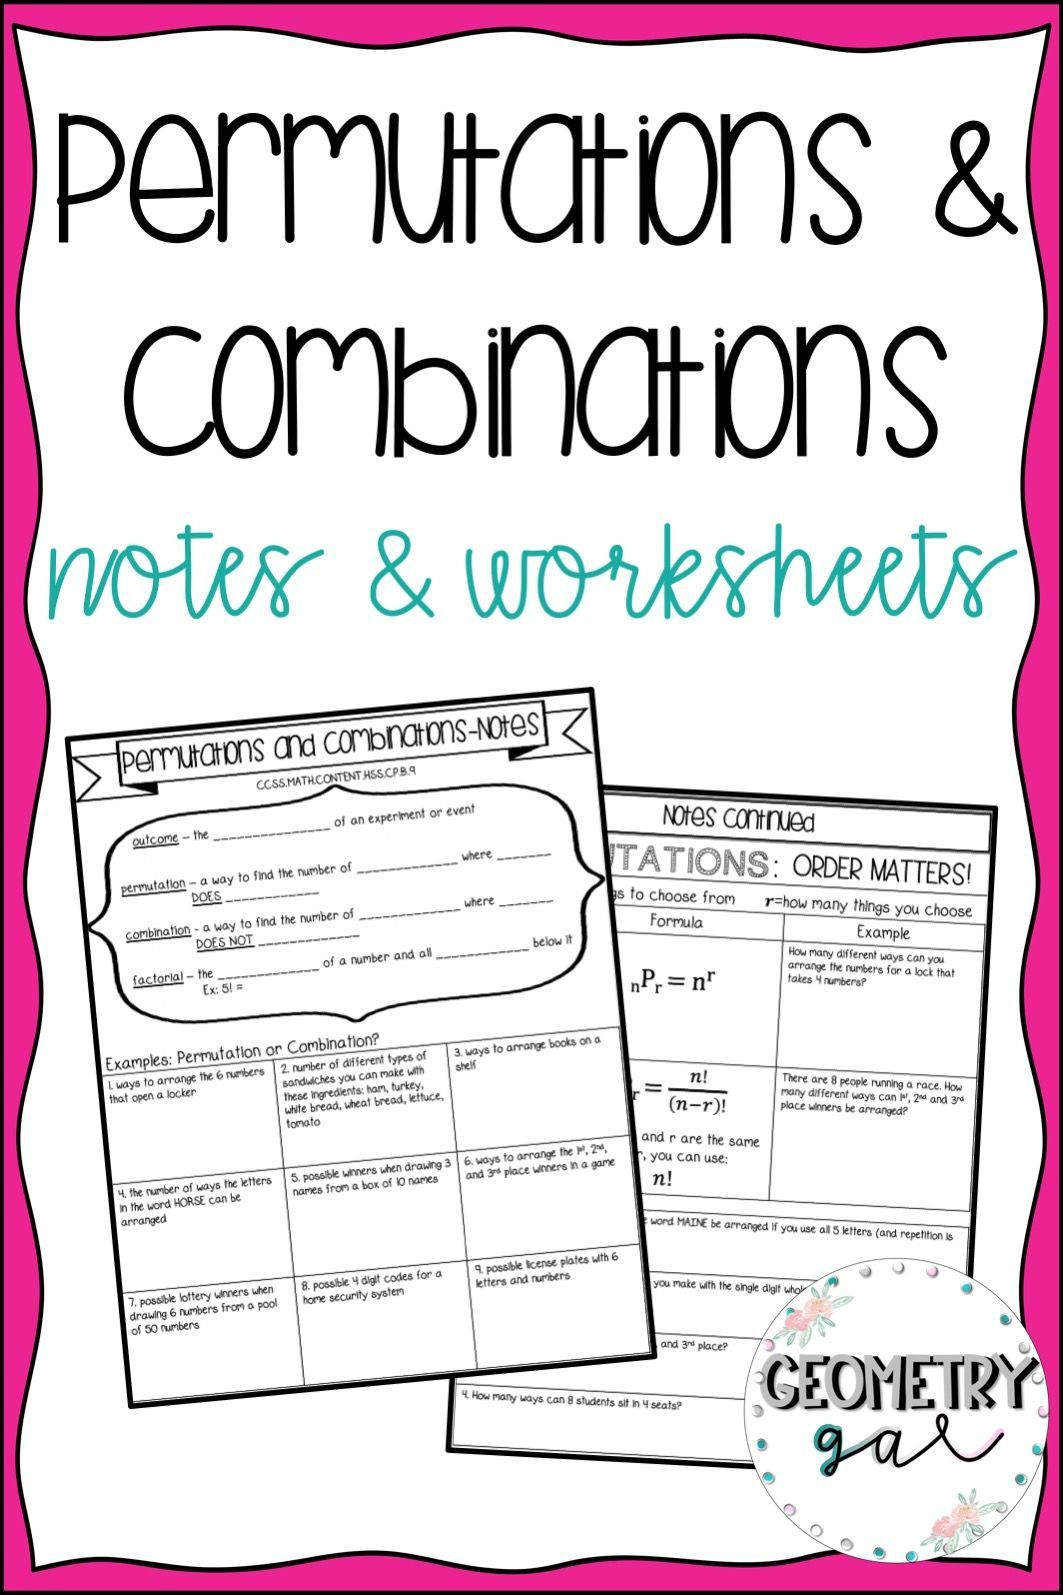 Permutations And Combinations Notes And Worksheets This